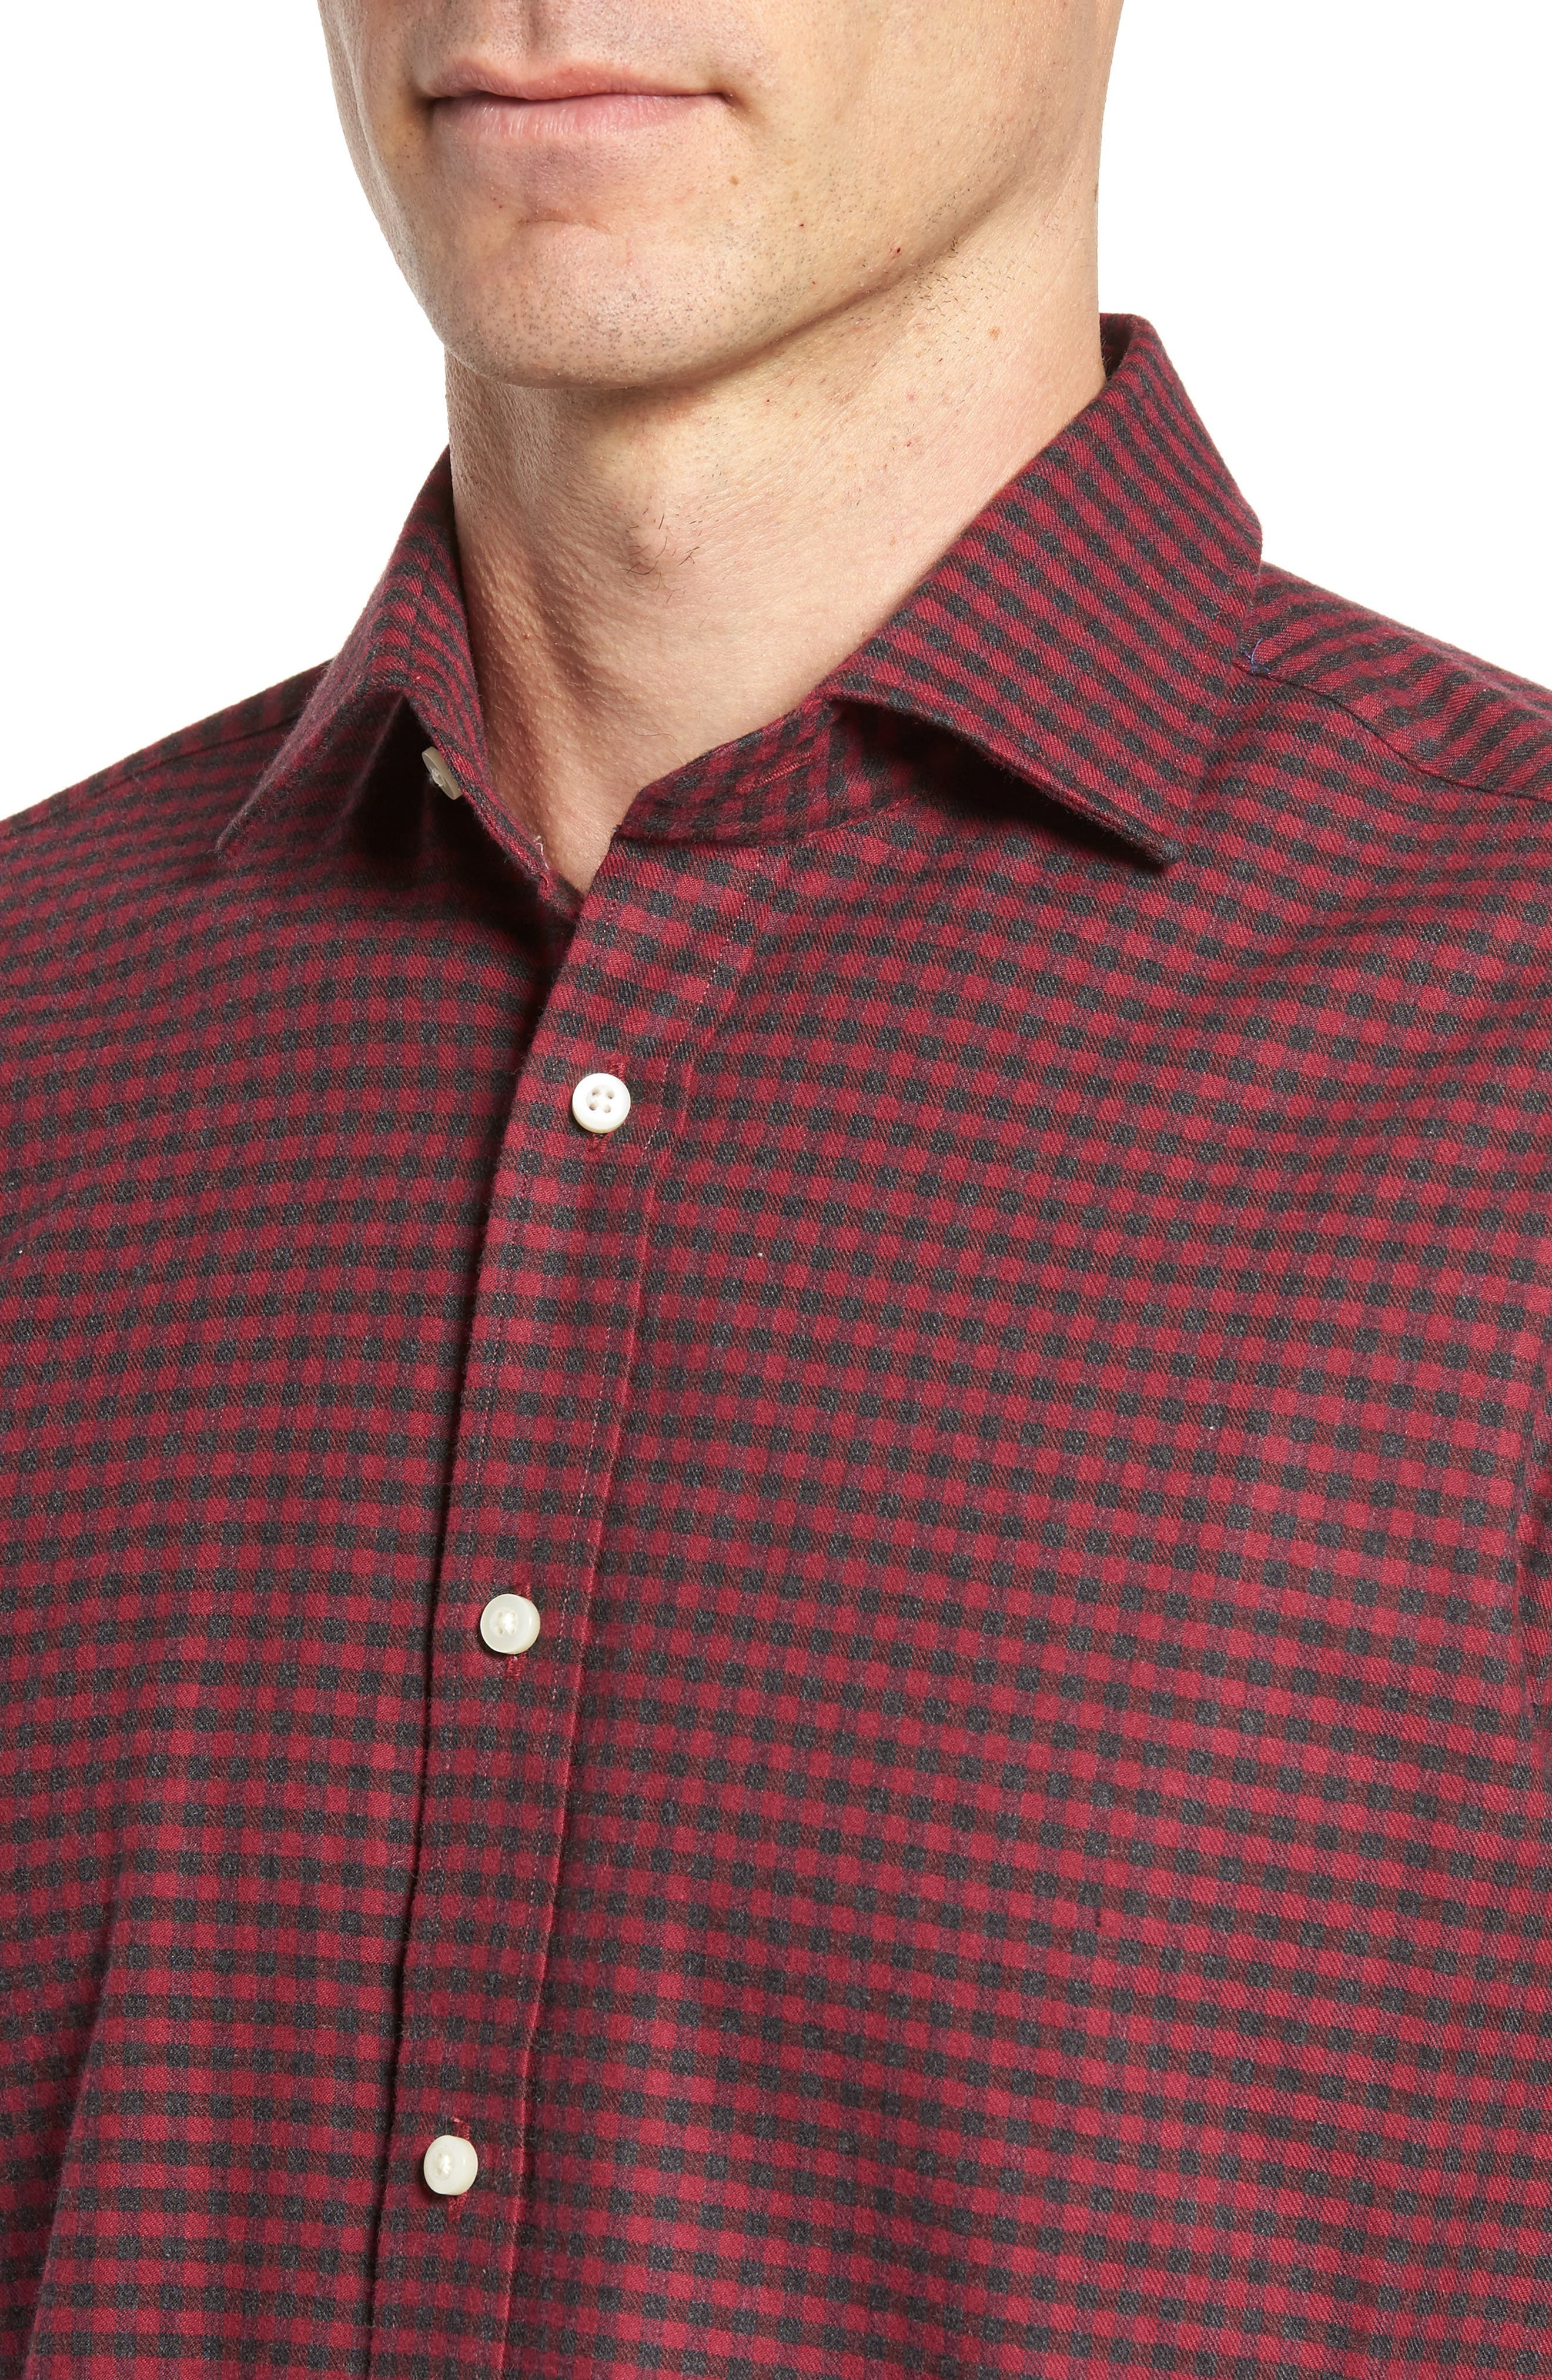 Regular Fit Check Sport Shirt,                             Alternate thumbnail 4, color,                             Dark Pink